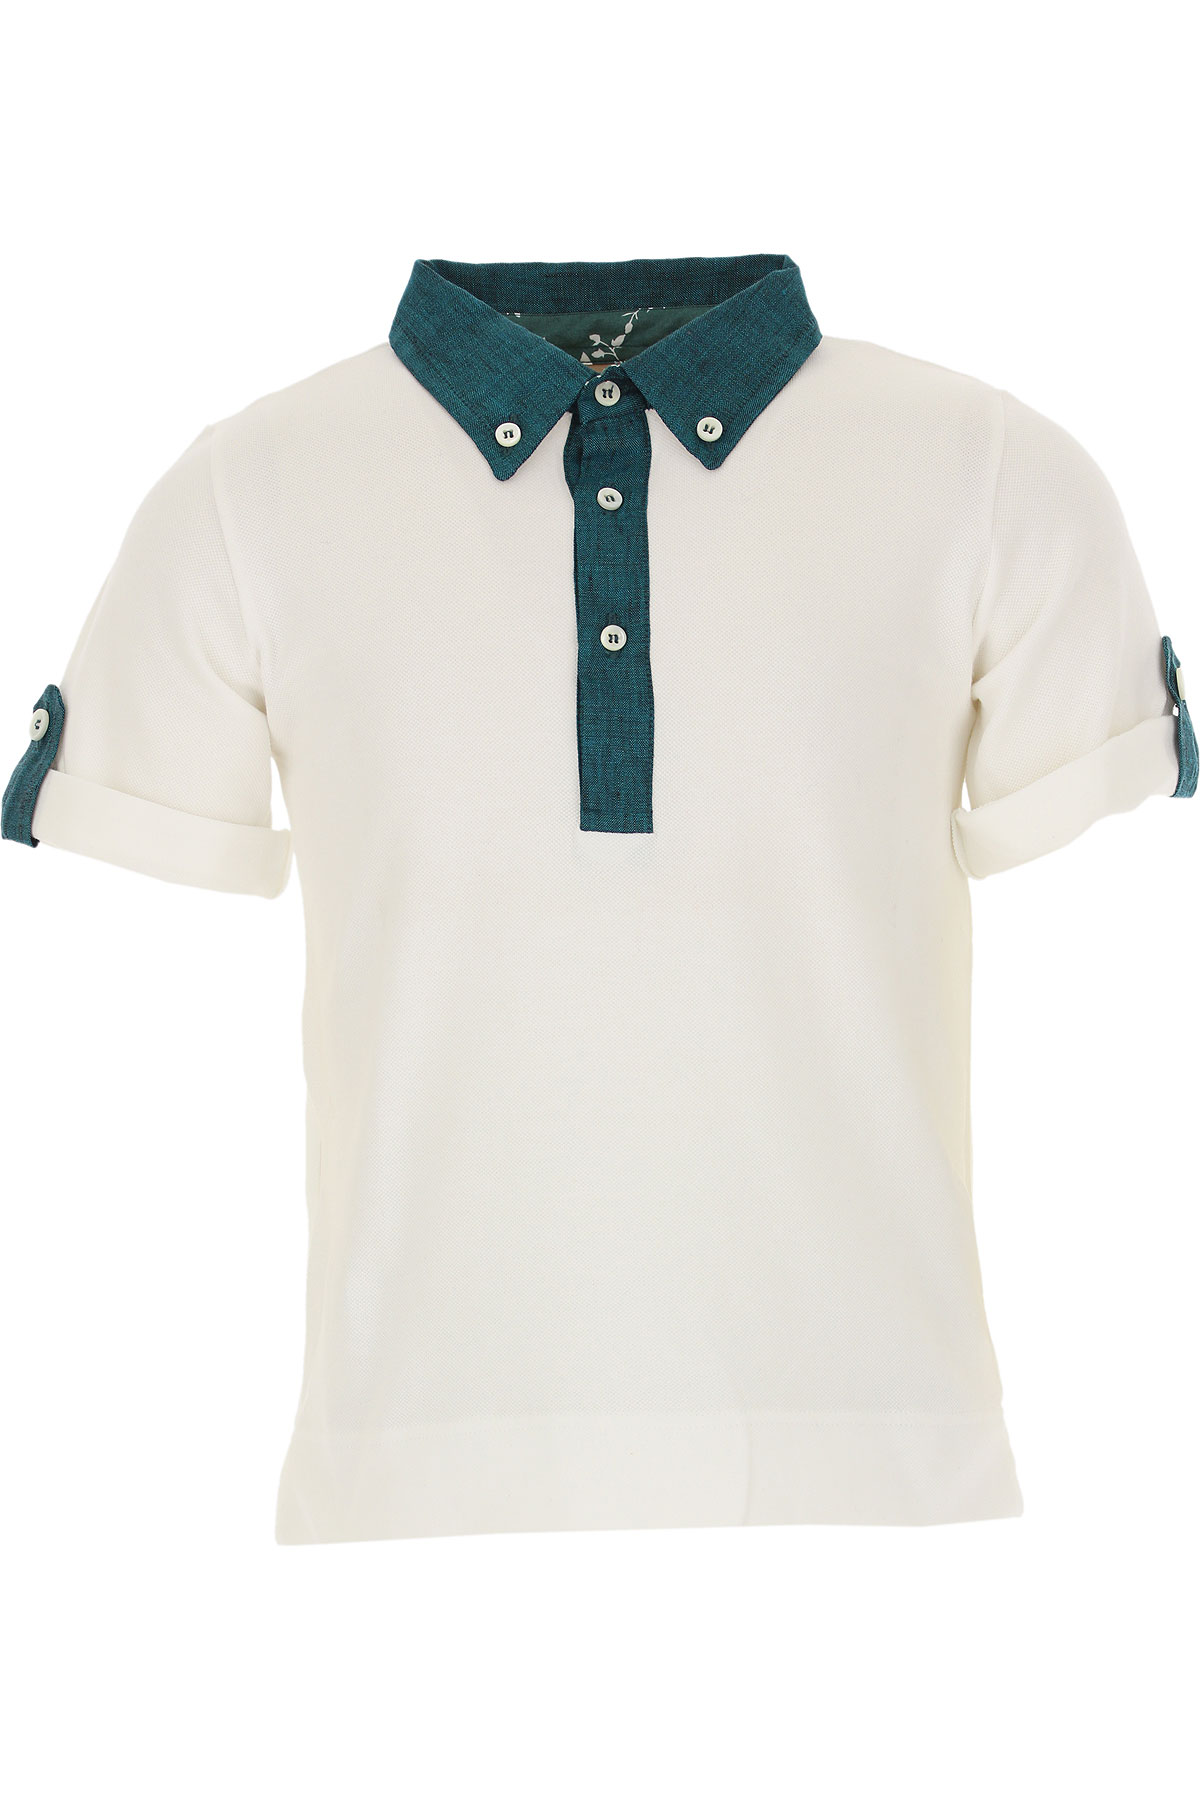 La Stupenderia Kids Polo Shirt for Boys On Sale in Outlet, White, Cotton, 2019, 2Y 4Y